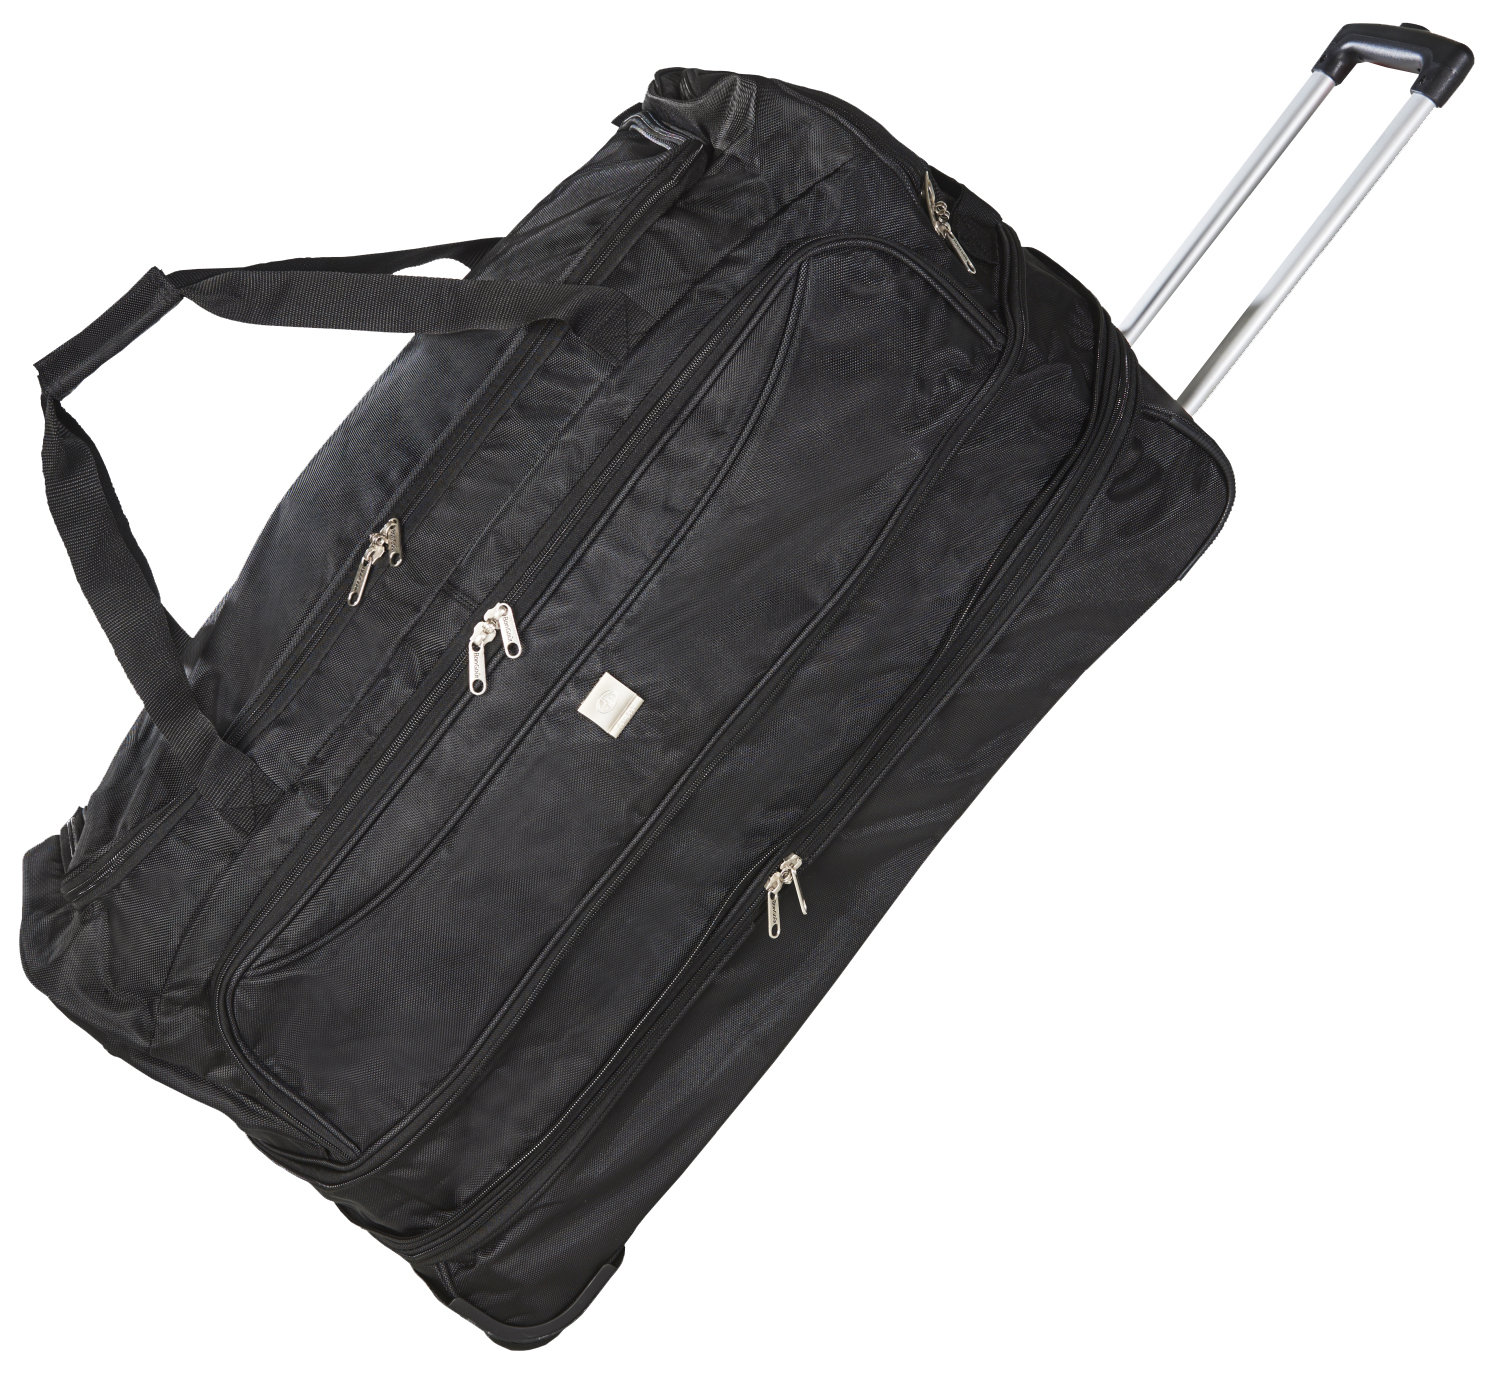 Large Expandable Wheeled Trolley Roller Travel Duffel Bag Luggage With Wheels